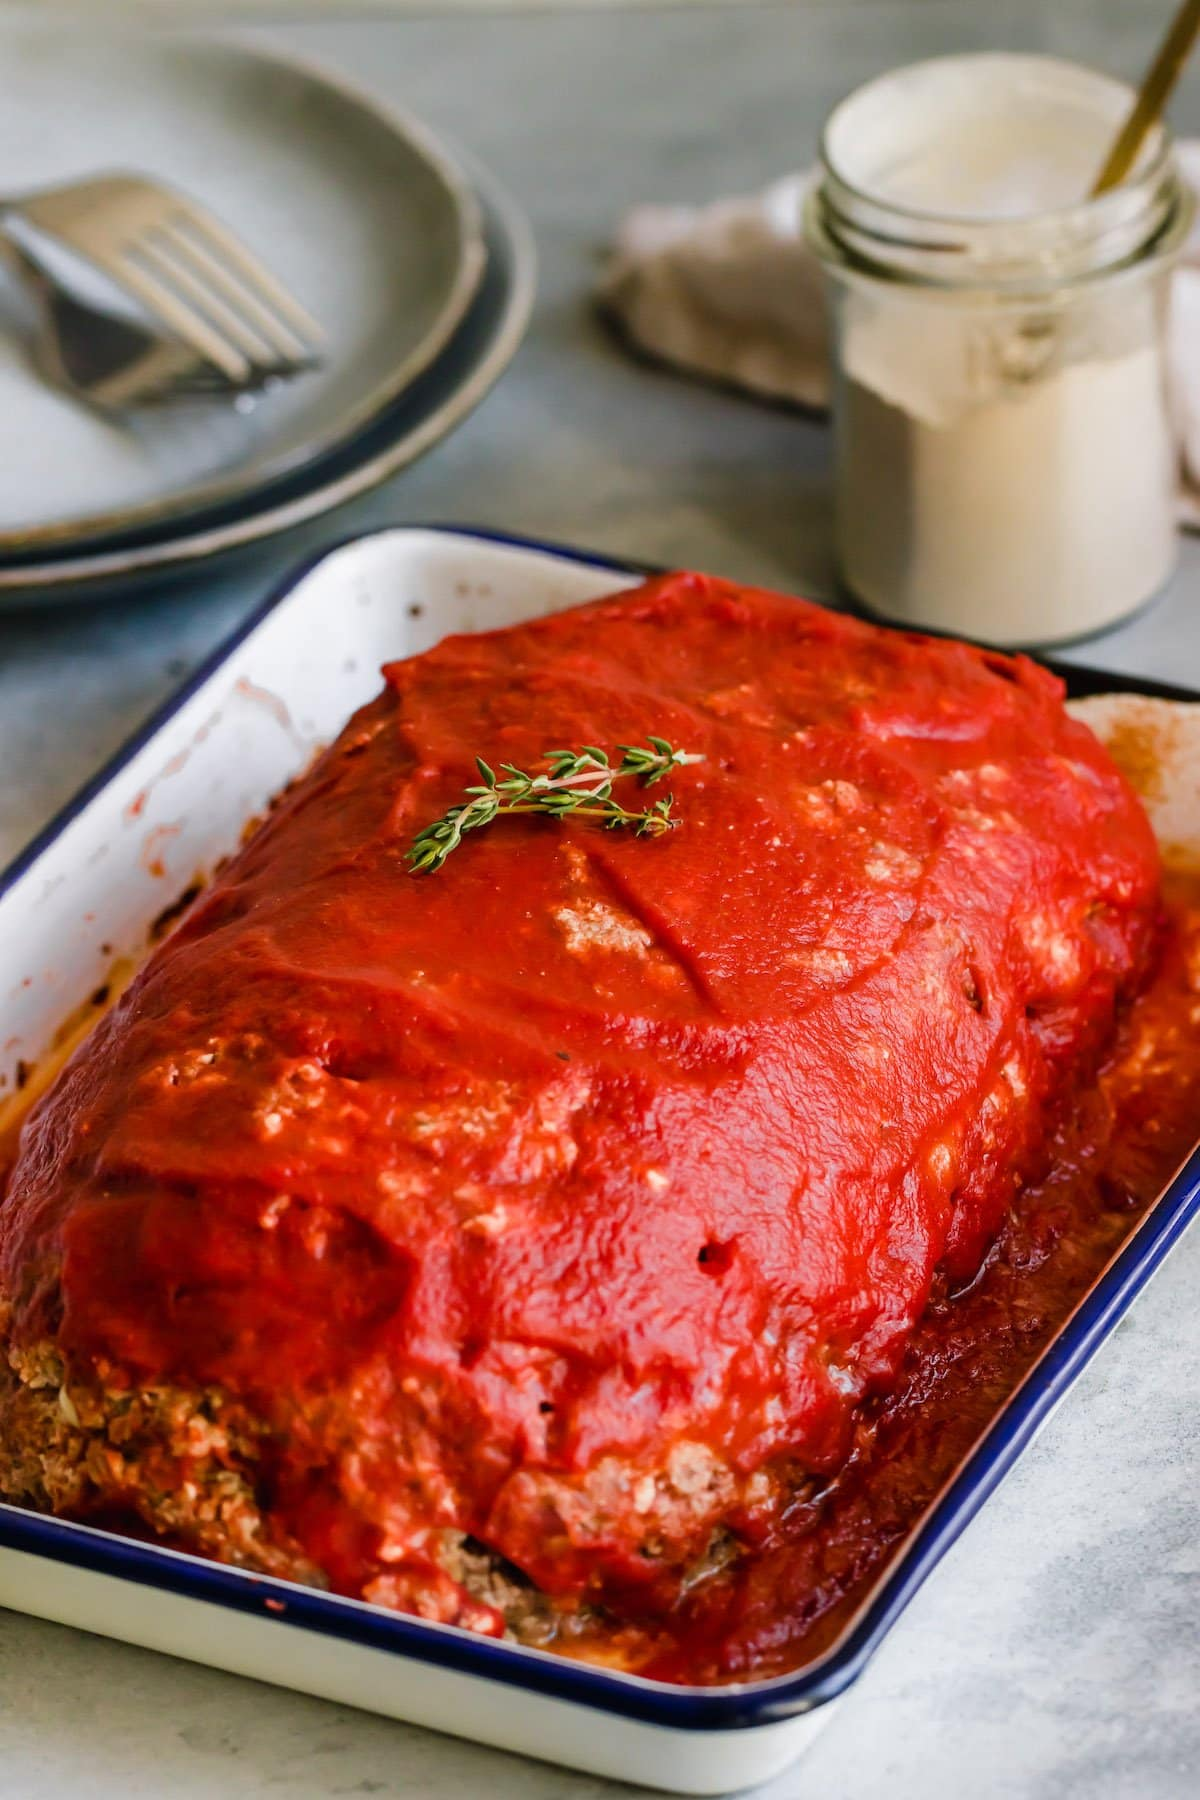 Pizza meatloaf with sauce in a pan.